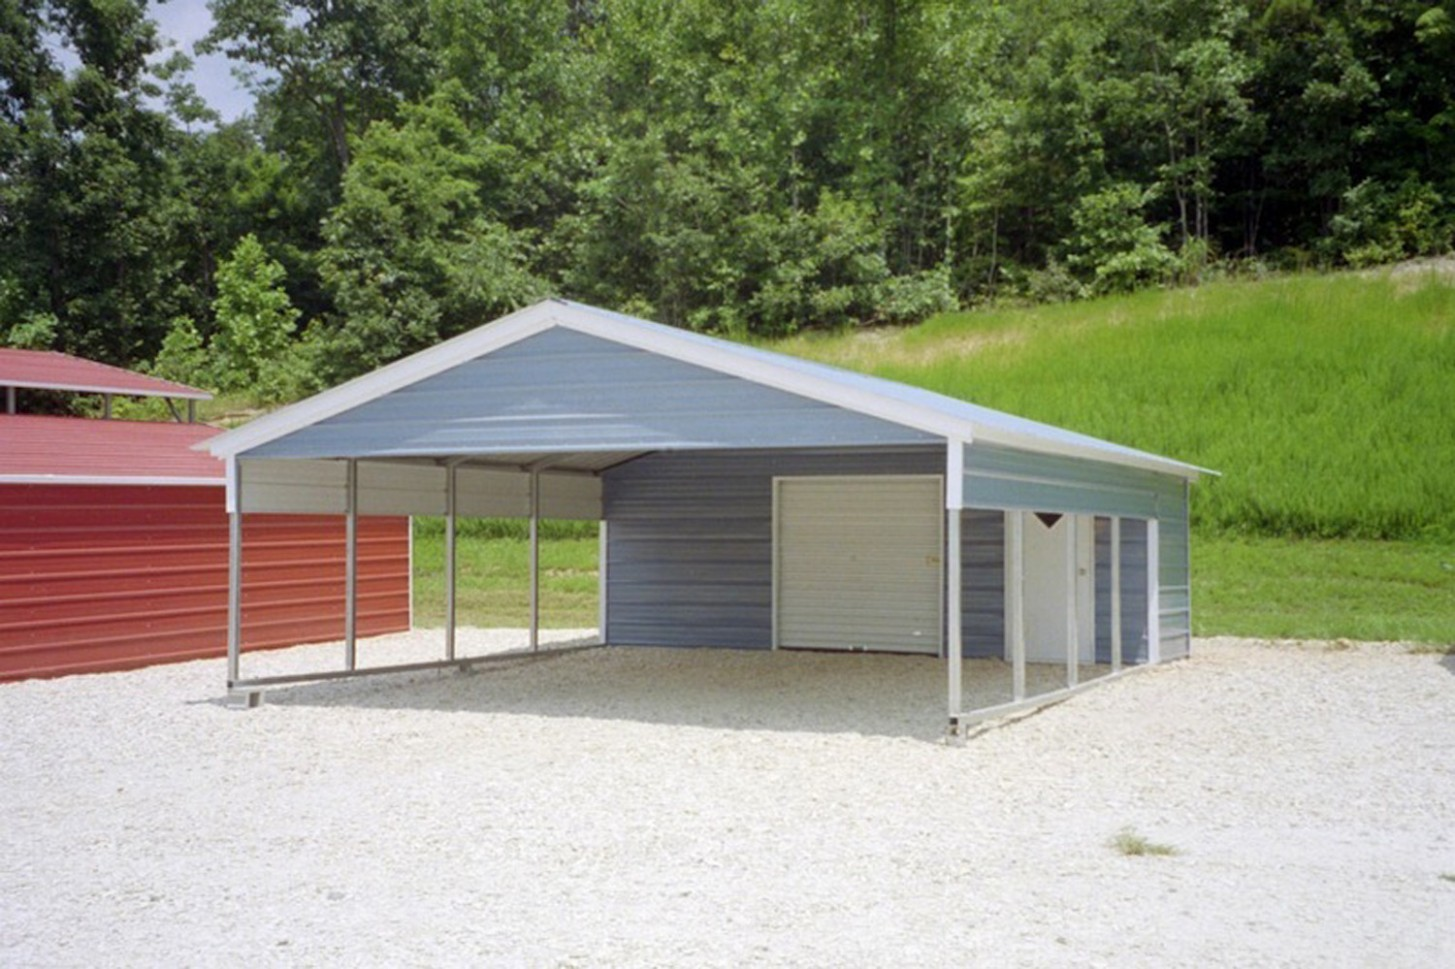 Steel Carport Kits Is So Famous, But Why? | steel carport kits